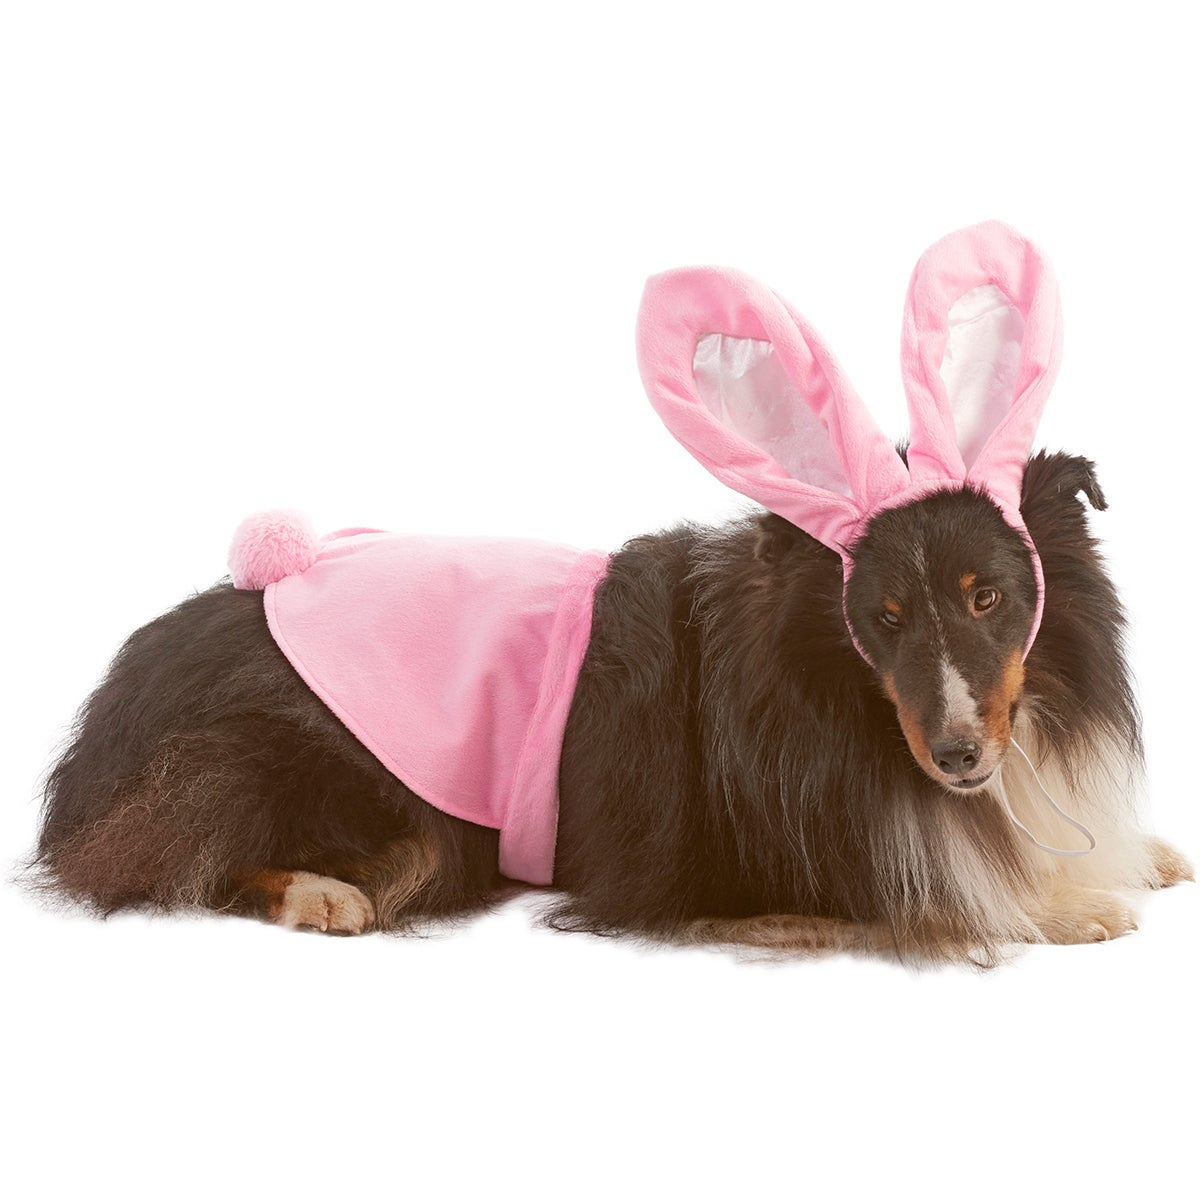 Bunny Dog Costume (Extra Small/Small), Multi